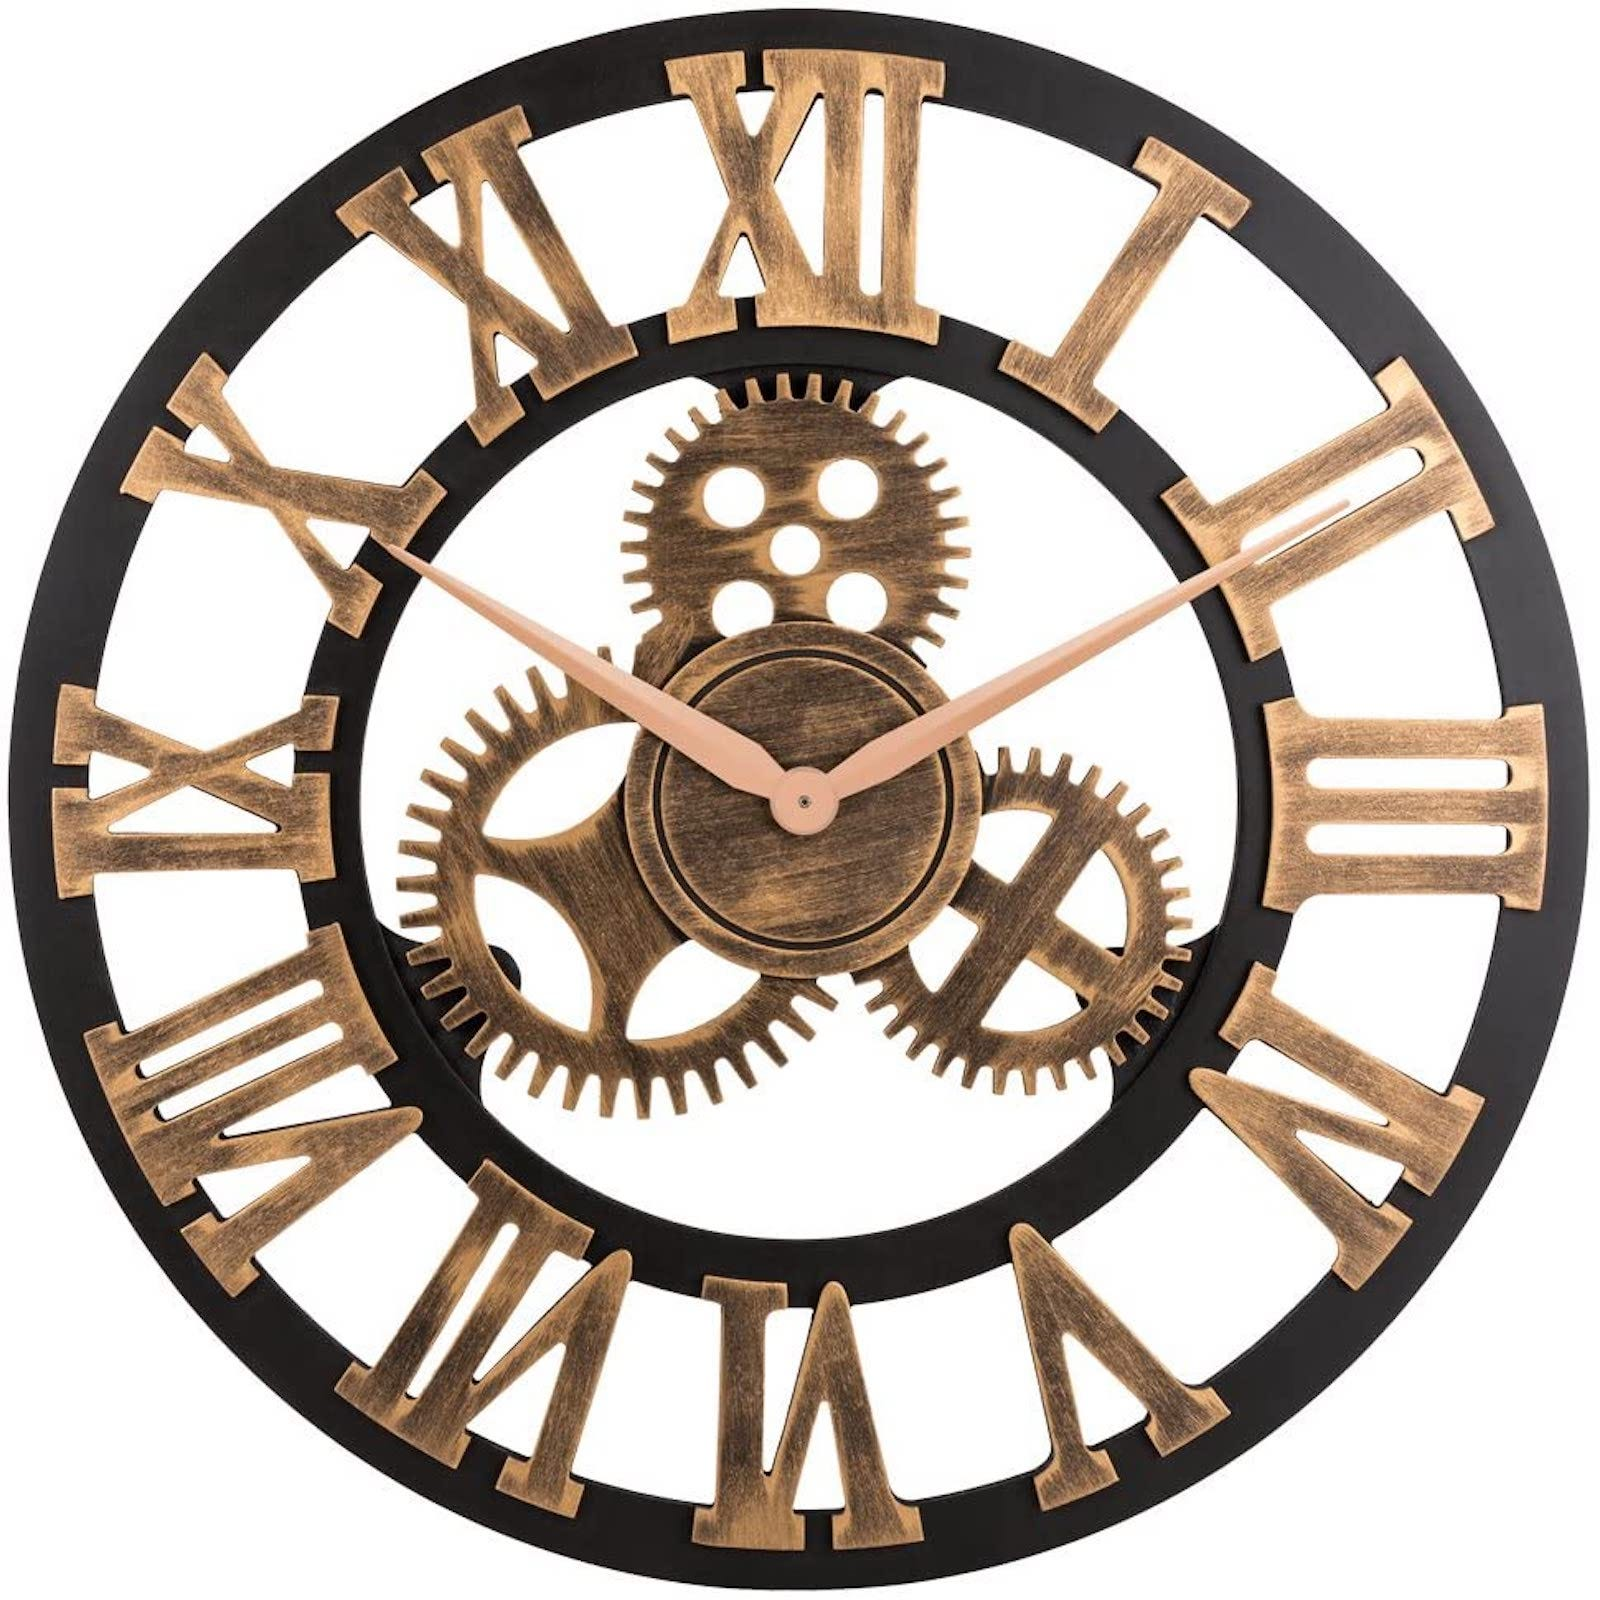 Black and wood clock face with Roman numerals and gears at the center